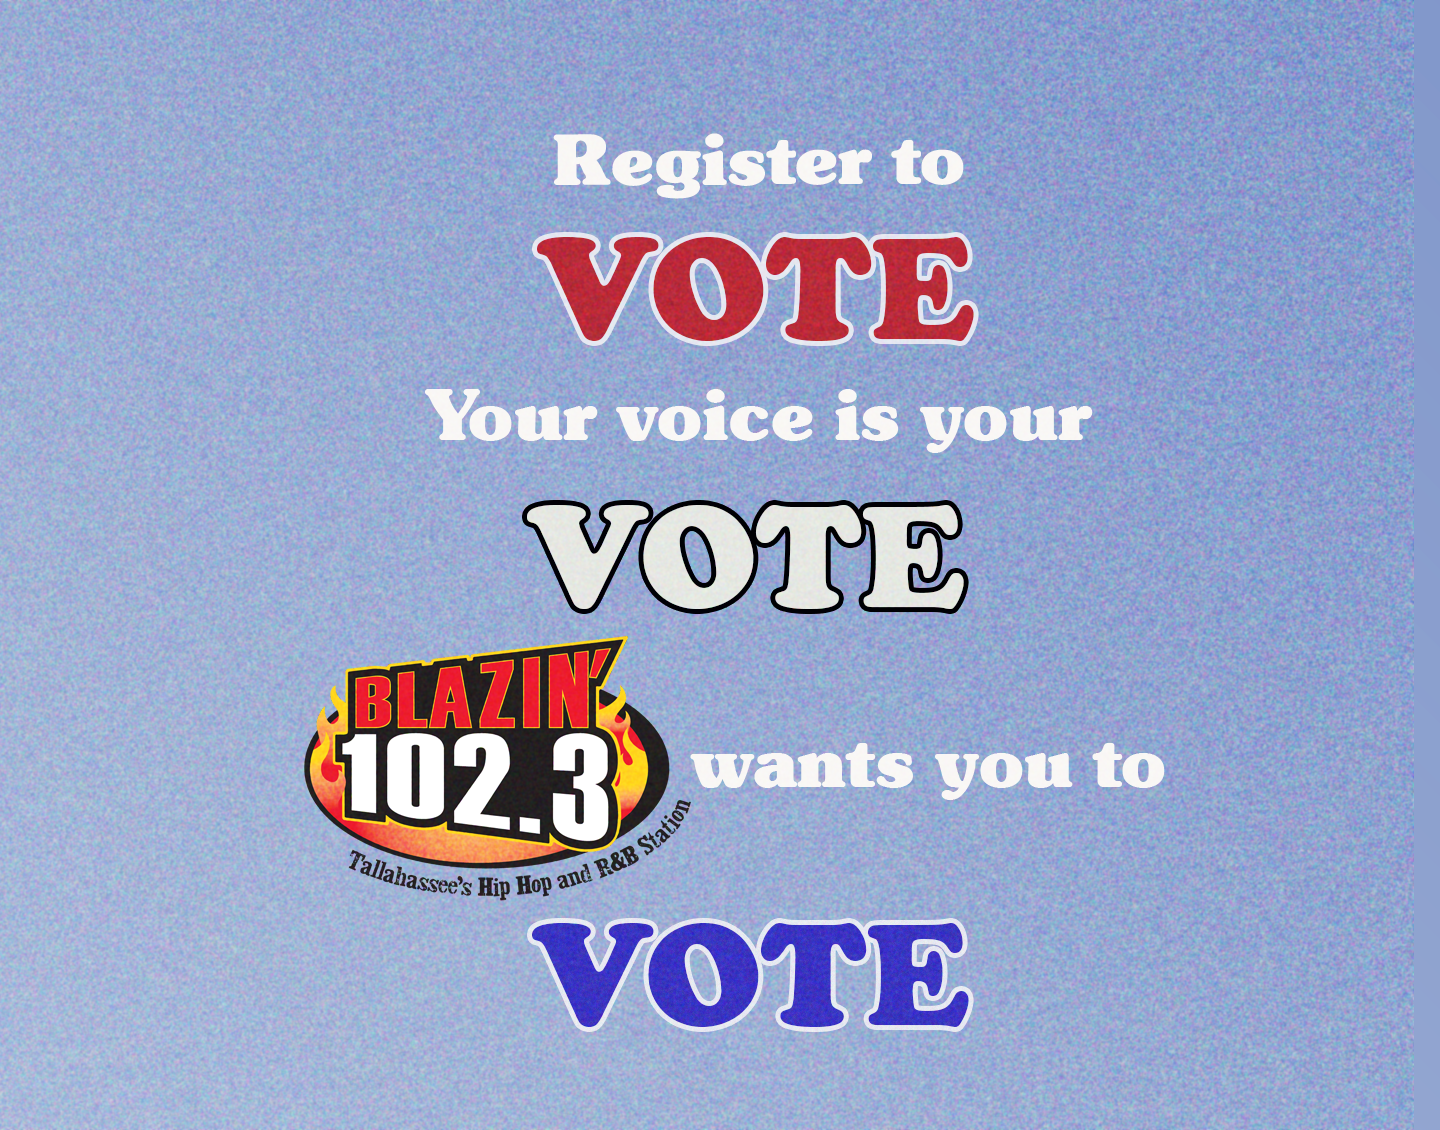 Blazin' 102.3 wants you to VOTE!